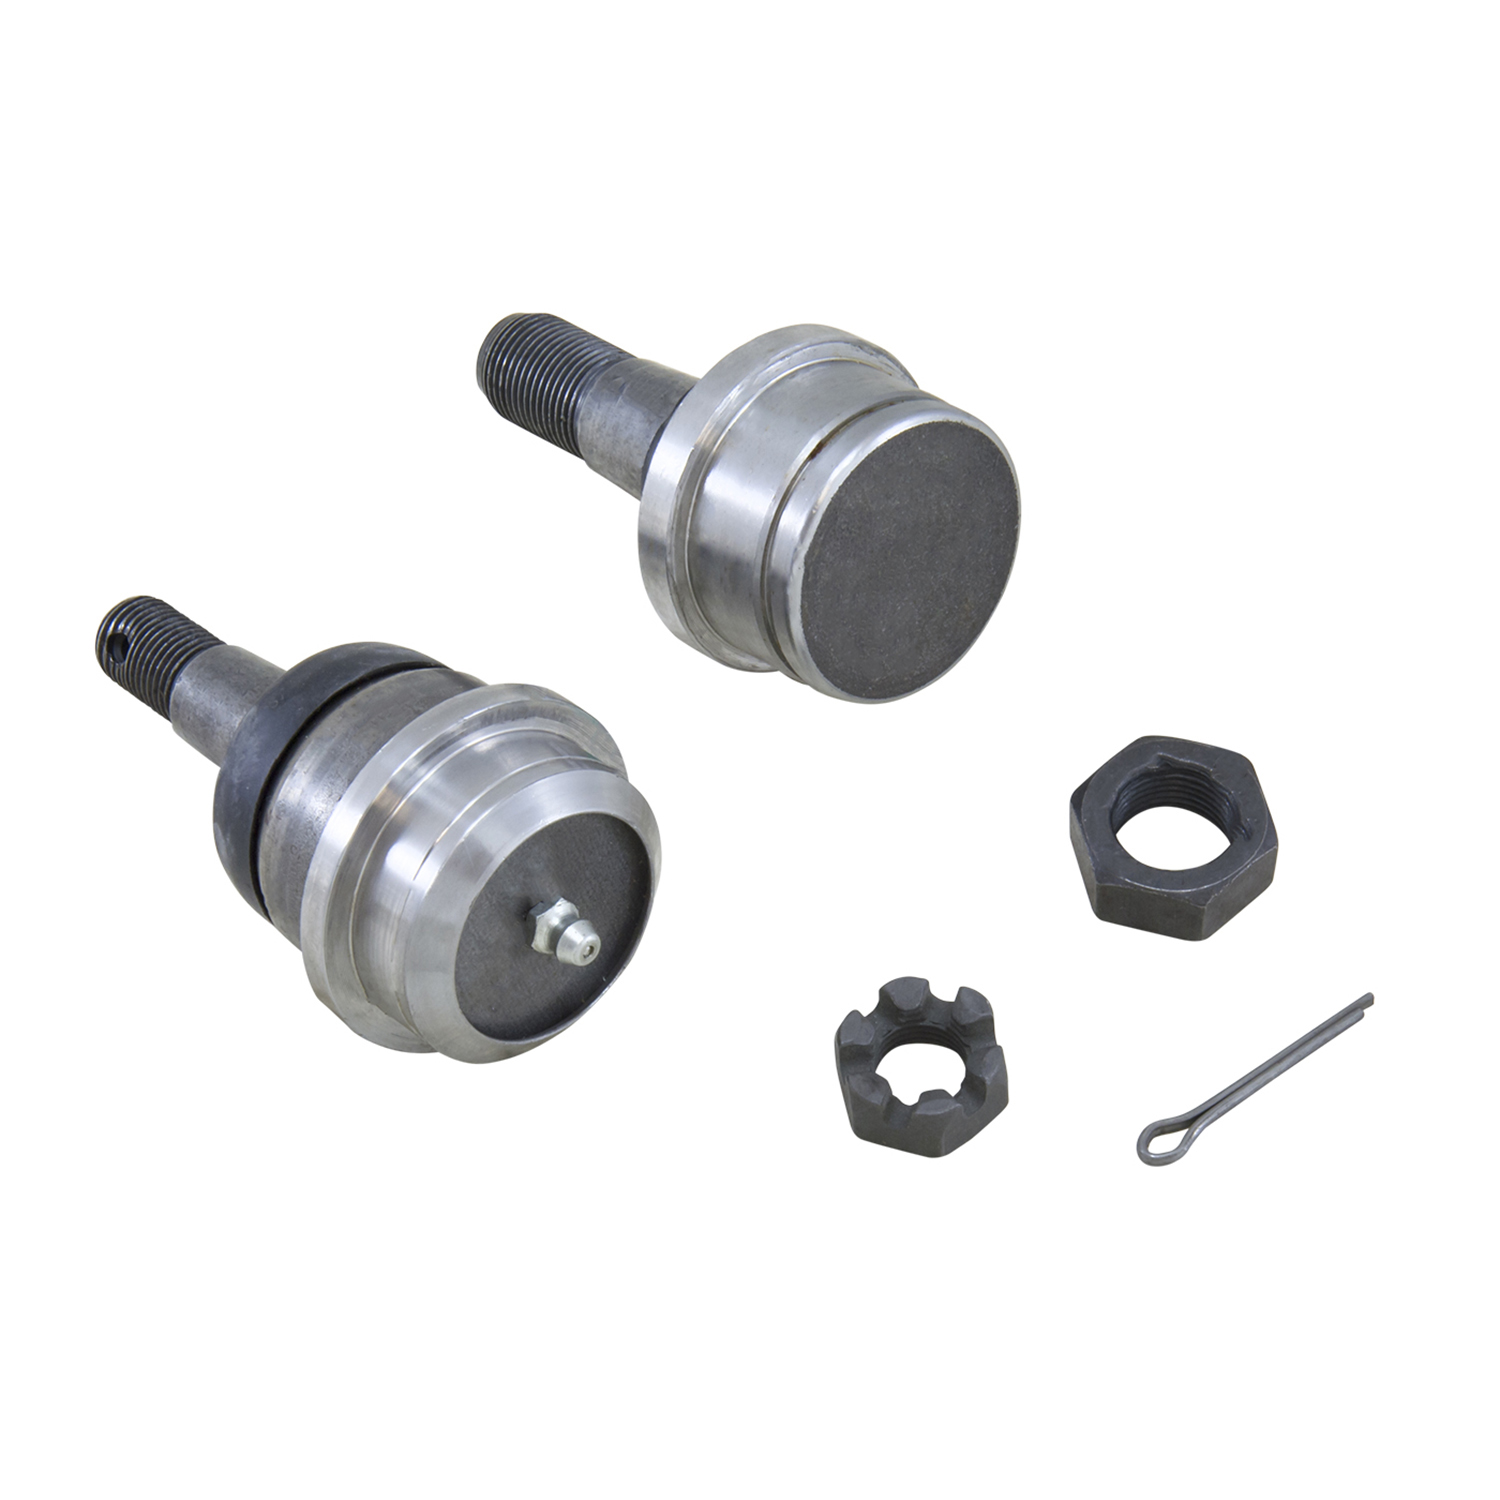 YSPBJ-017 - Ball Joint kit for 2000 - 2001 Dodge Dana 44, one side